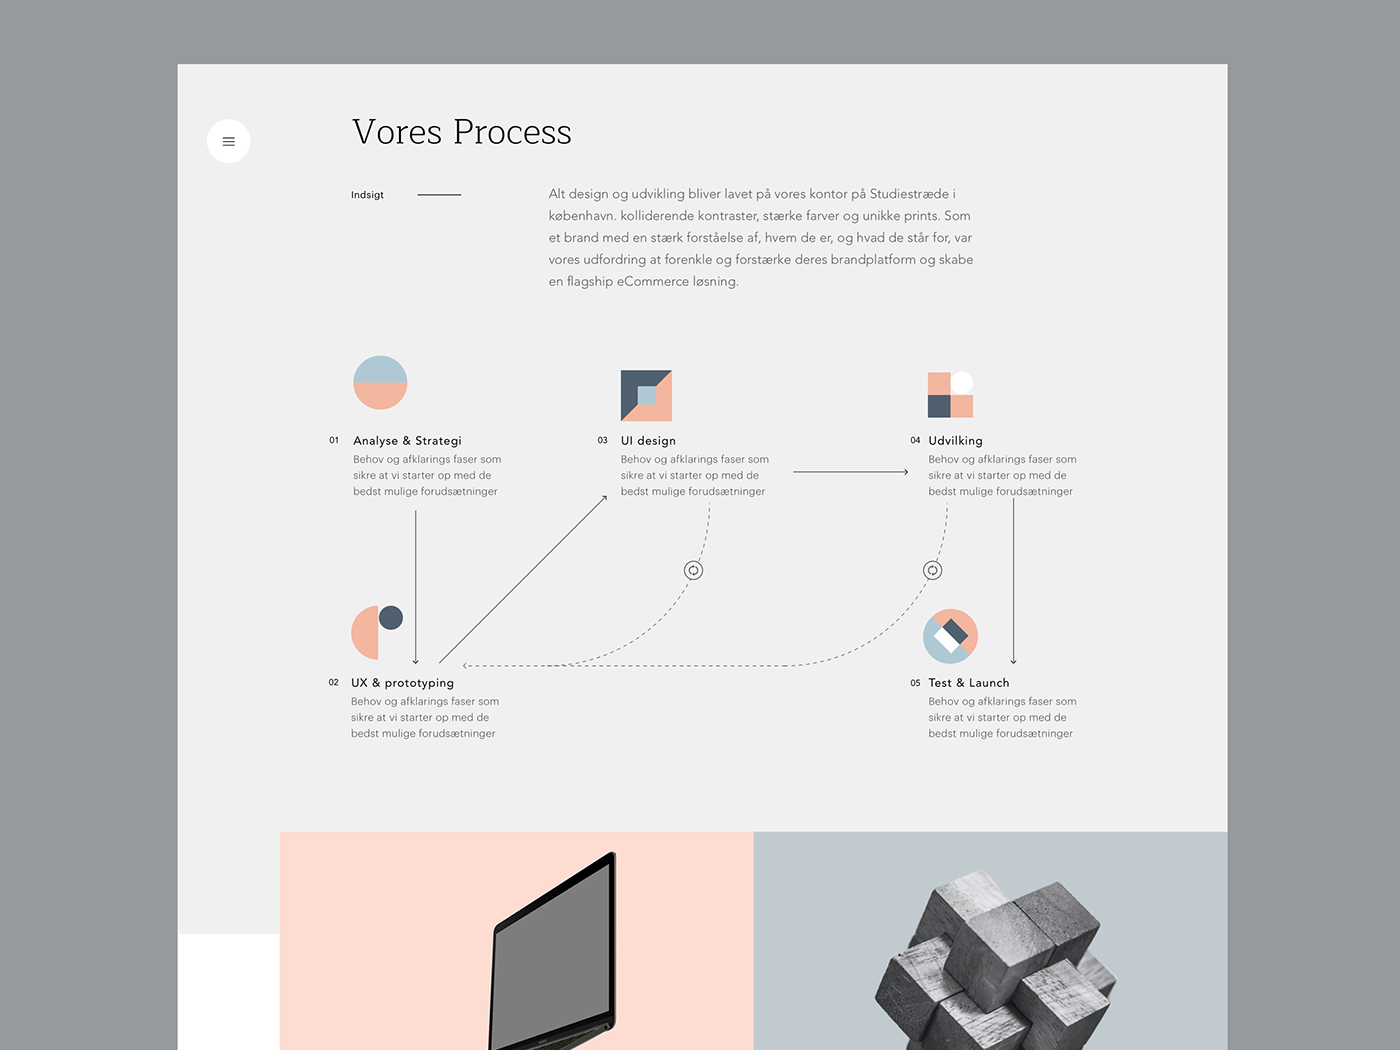 Konform - webdesign simple clean interface simple interface ui design diagram process